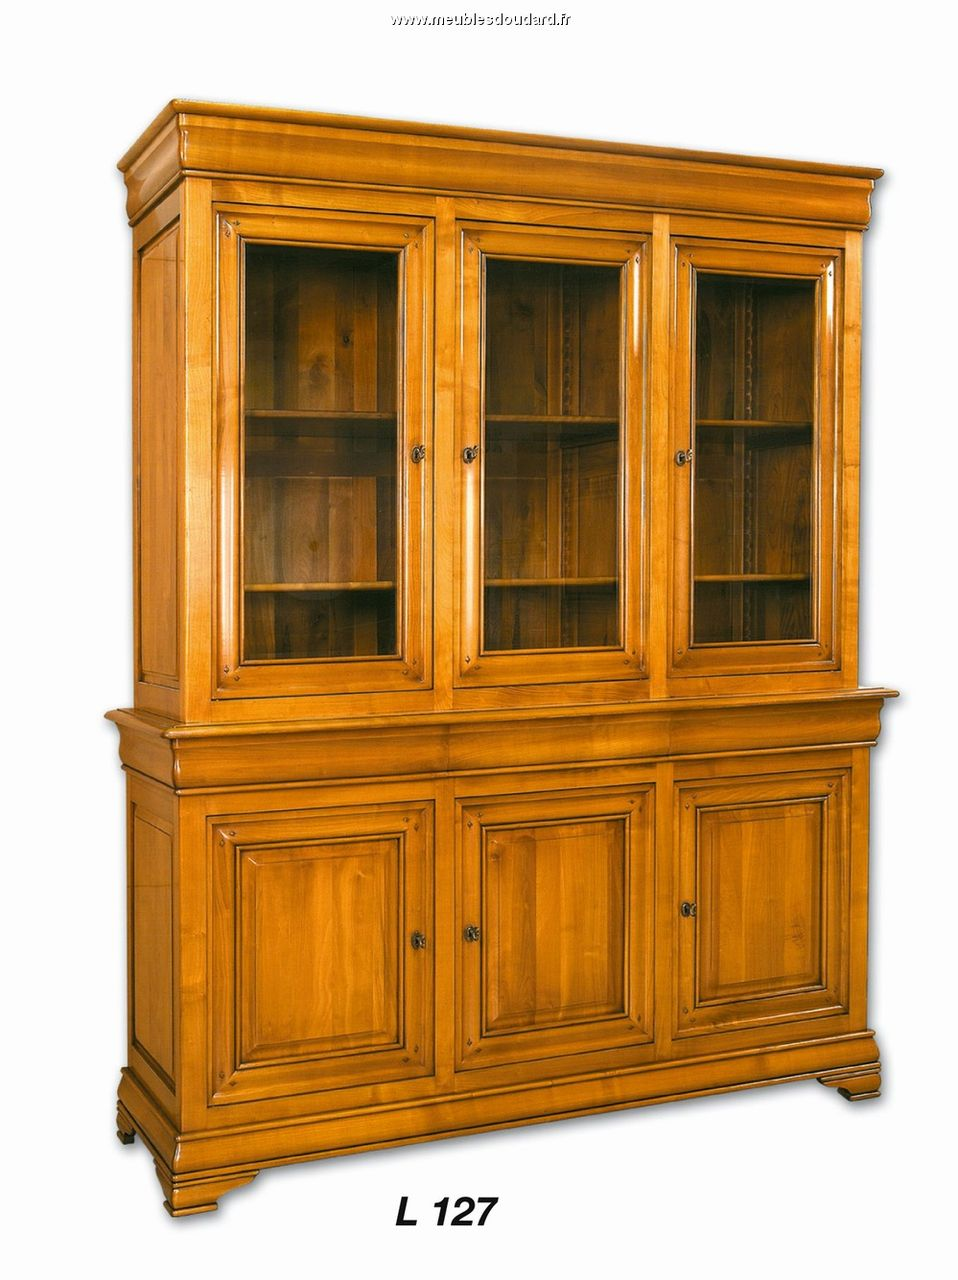 meuble biblioth que biblioth que louis philippe biblioth que merisier. Black Bedroom Furniture Sets. Home Design Ideas